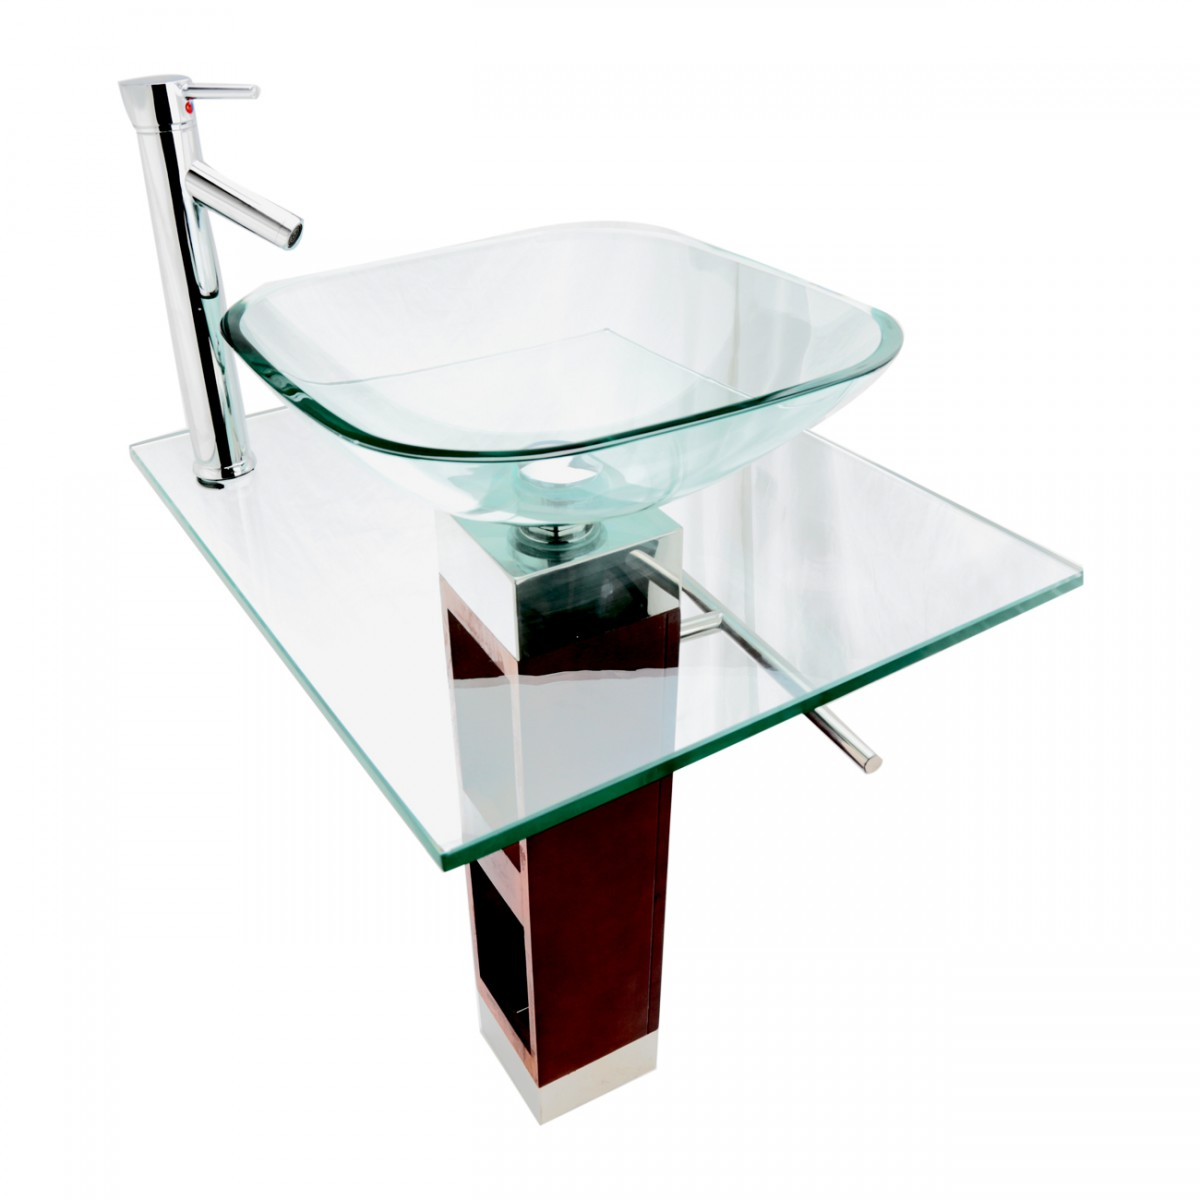 Renovators Supply Tempered Glass Bathroom Pedestal Sink with Faucet and Drain Pedestal sink with Faucet and Drain Combo Tempered Glass Pedestal Sink Glass Vanity Bathroom Sink